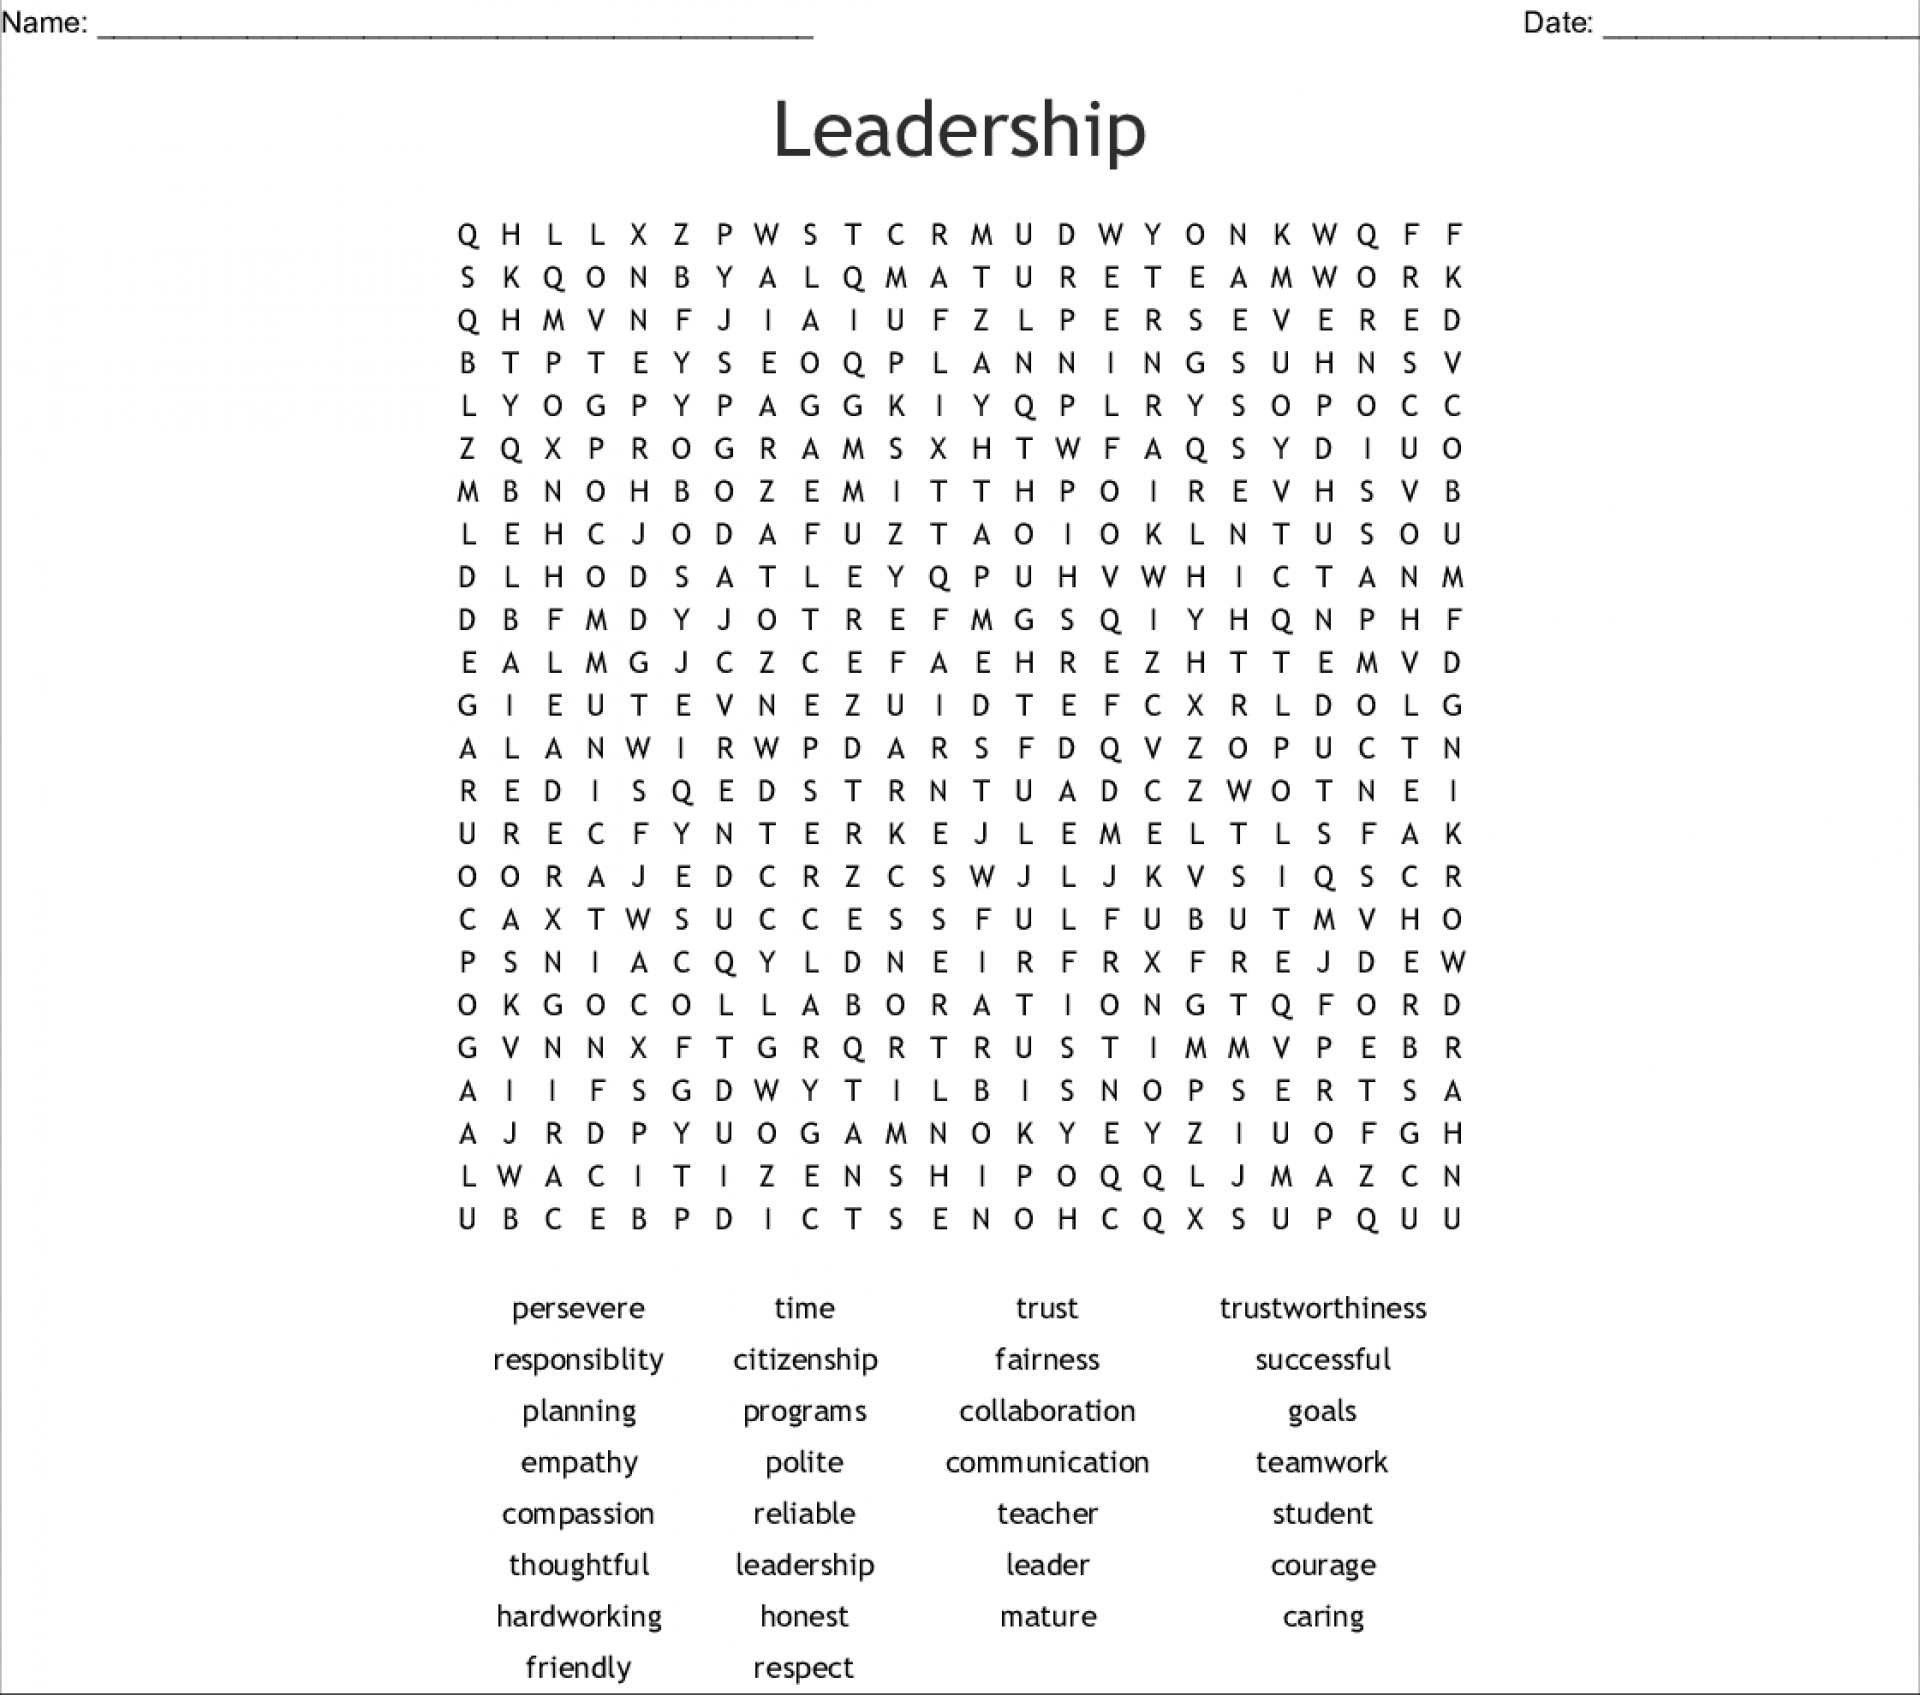 011 Leadership Printable Word Hard Searches